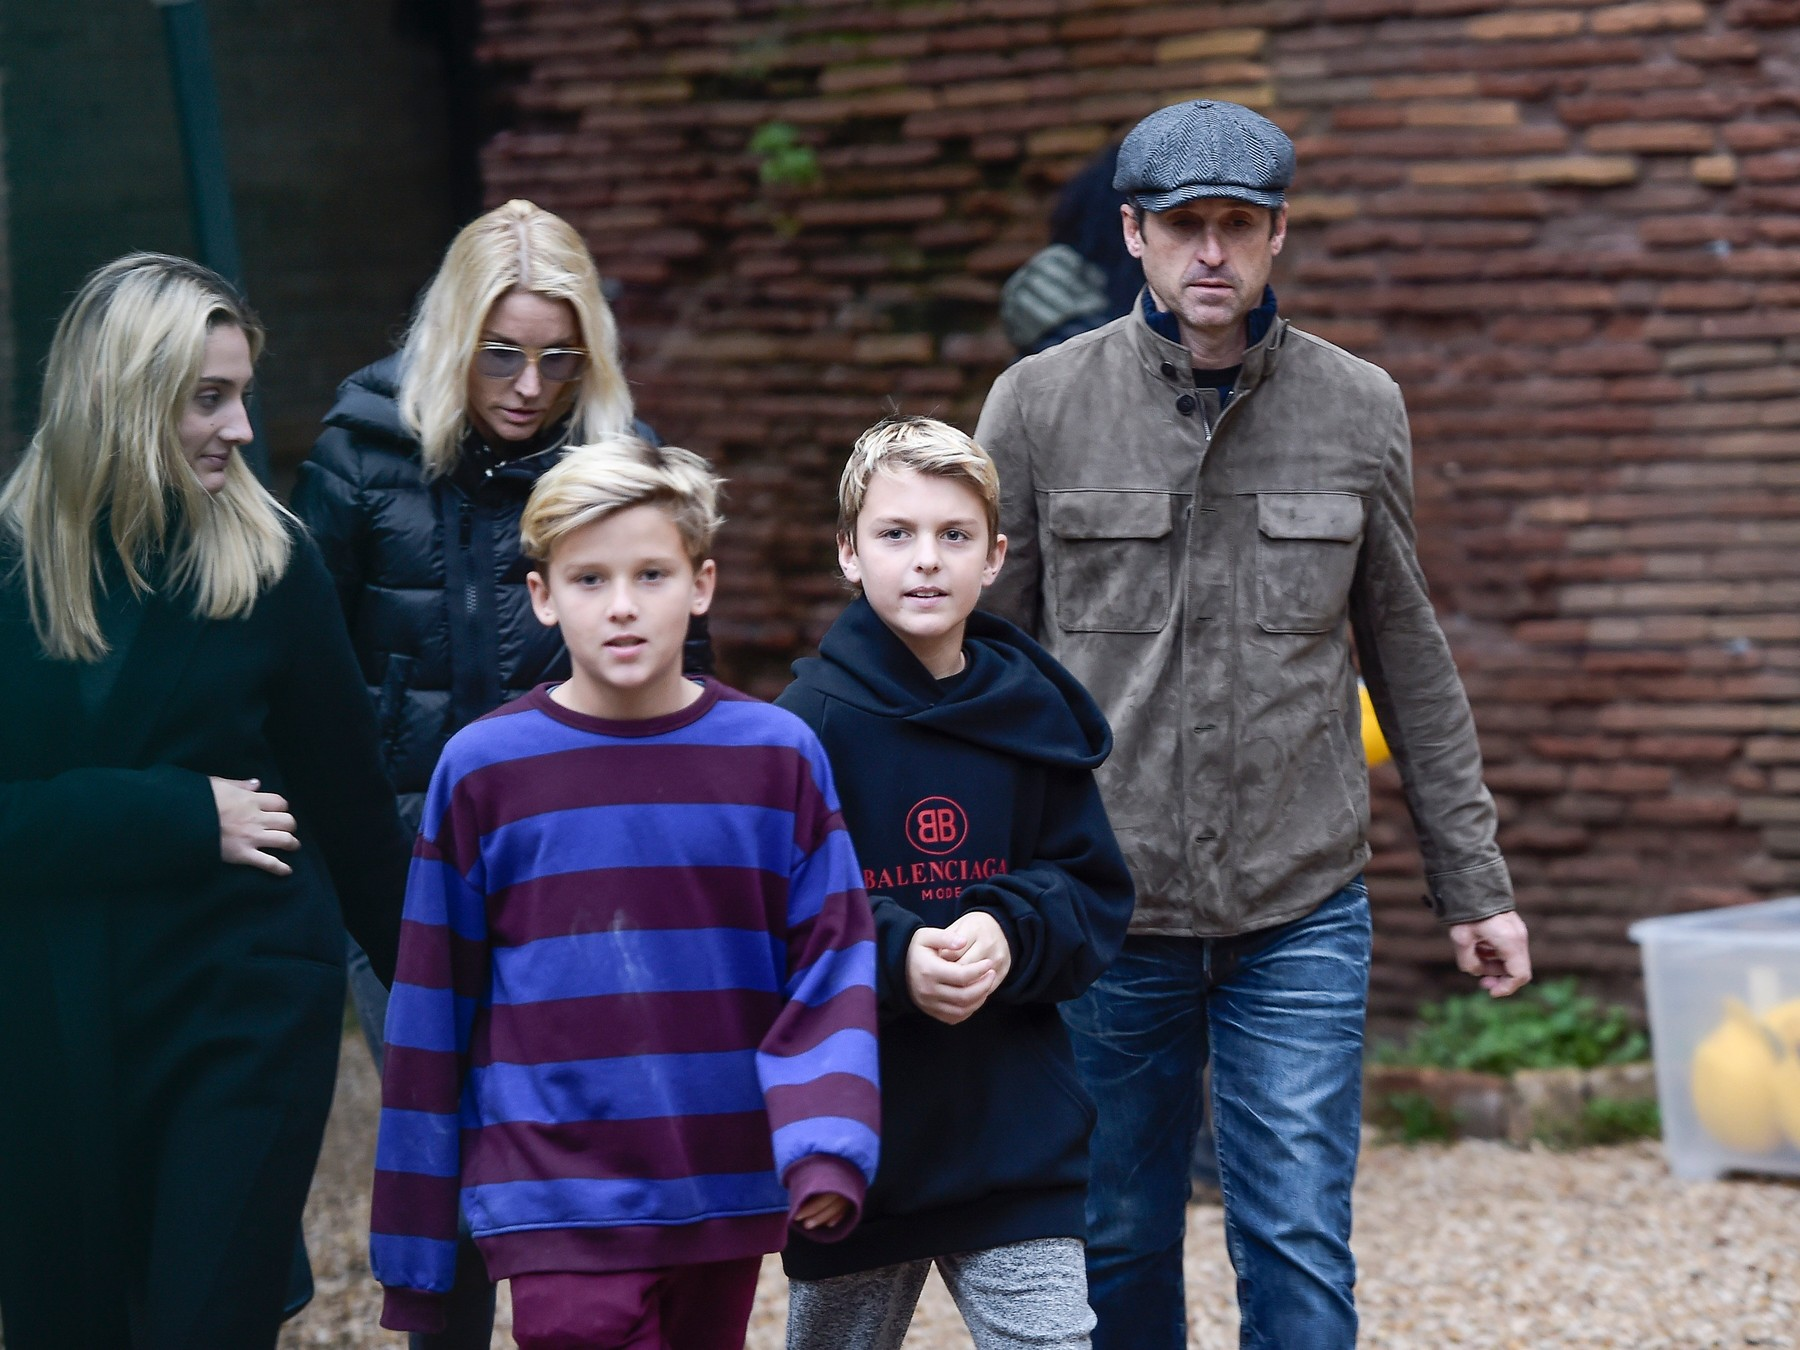 EXCLUSIVE: Patrick Dempsey, in Rome to star in a tv serie is spotted enjoying a visit to the ancient Nero's Domus Aurea, where they had to wear a yellow protective helmet with his wife Jillian Fink and their 3 sons Tallulah Fyfe and twins Darby Galen and Sullivan Patrick. 24 Nov 2018, Image: 398246077, License: Rights-managed, Restrictions: NO Italy, Model Release: no, Credit line: Agostino Fabio/MEGA / Mega Agency / Profimedia